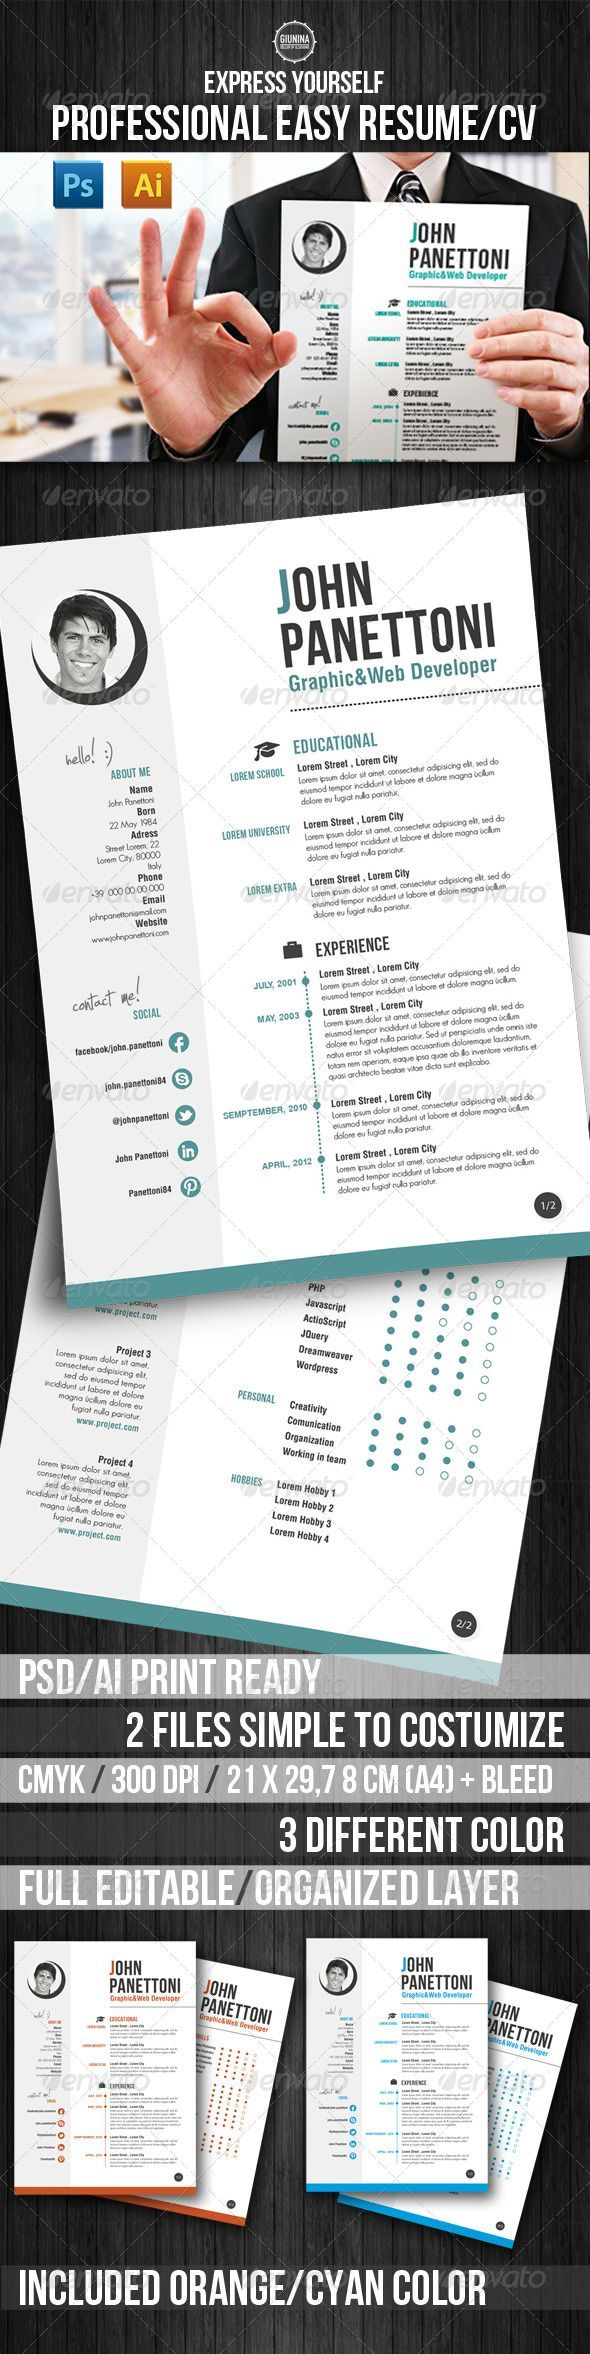 executive housekeeper resume%0A Professional Easy Resume CV  Resumes Stationery